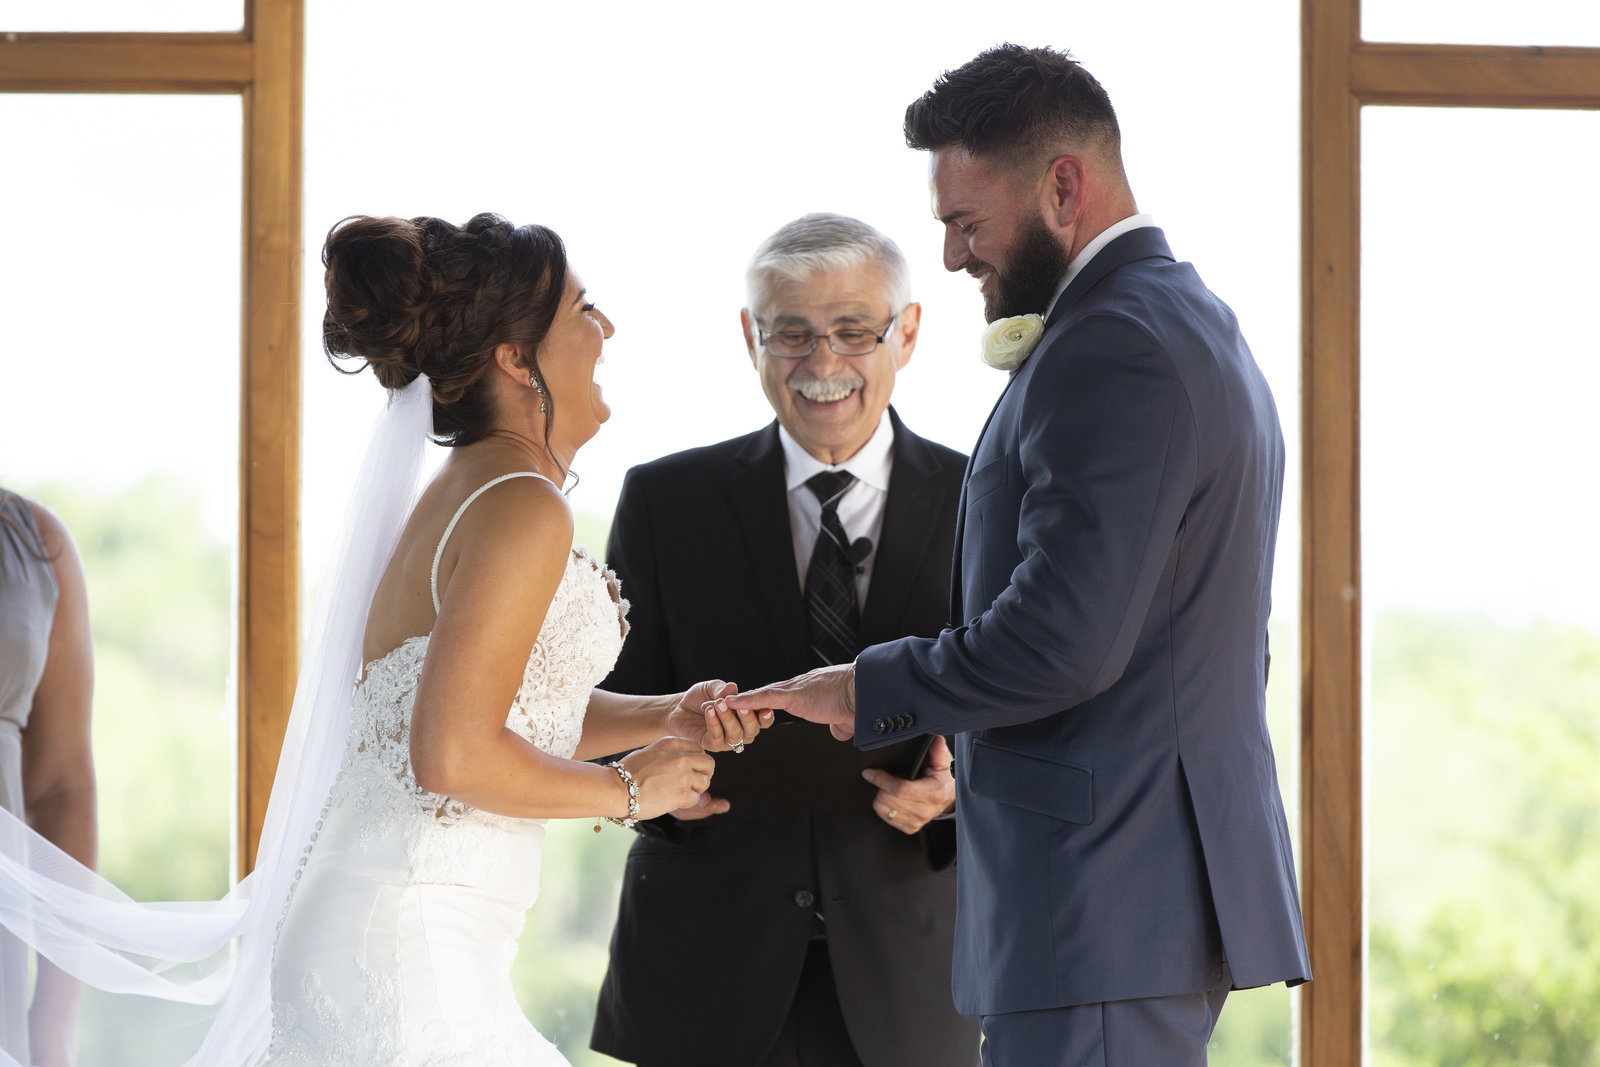 RMPhotography_PenaWedding_May4th2019_Ceremony-55